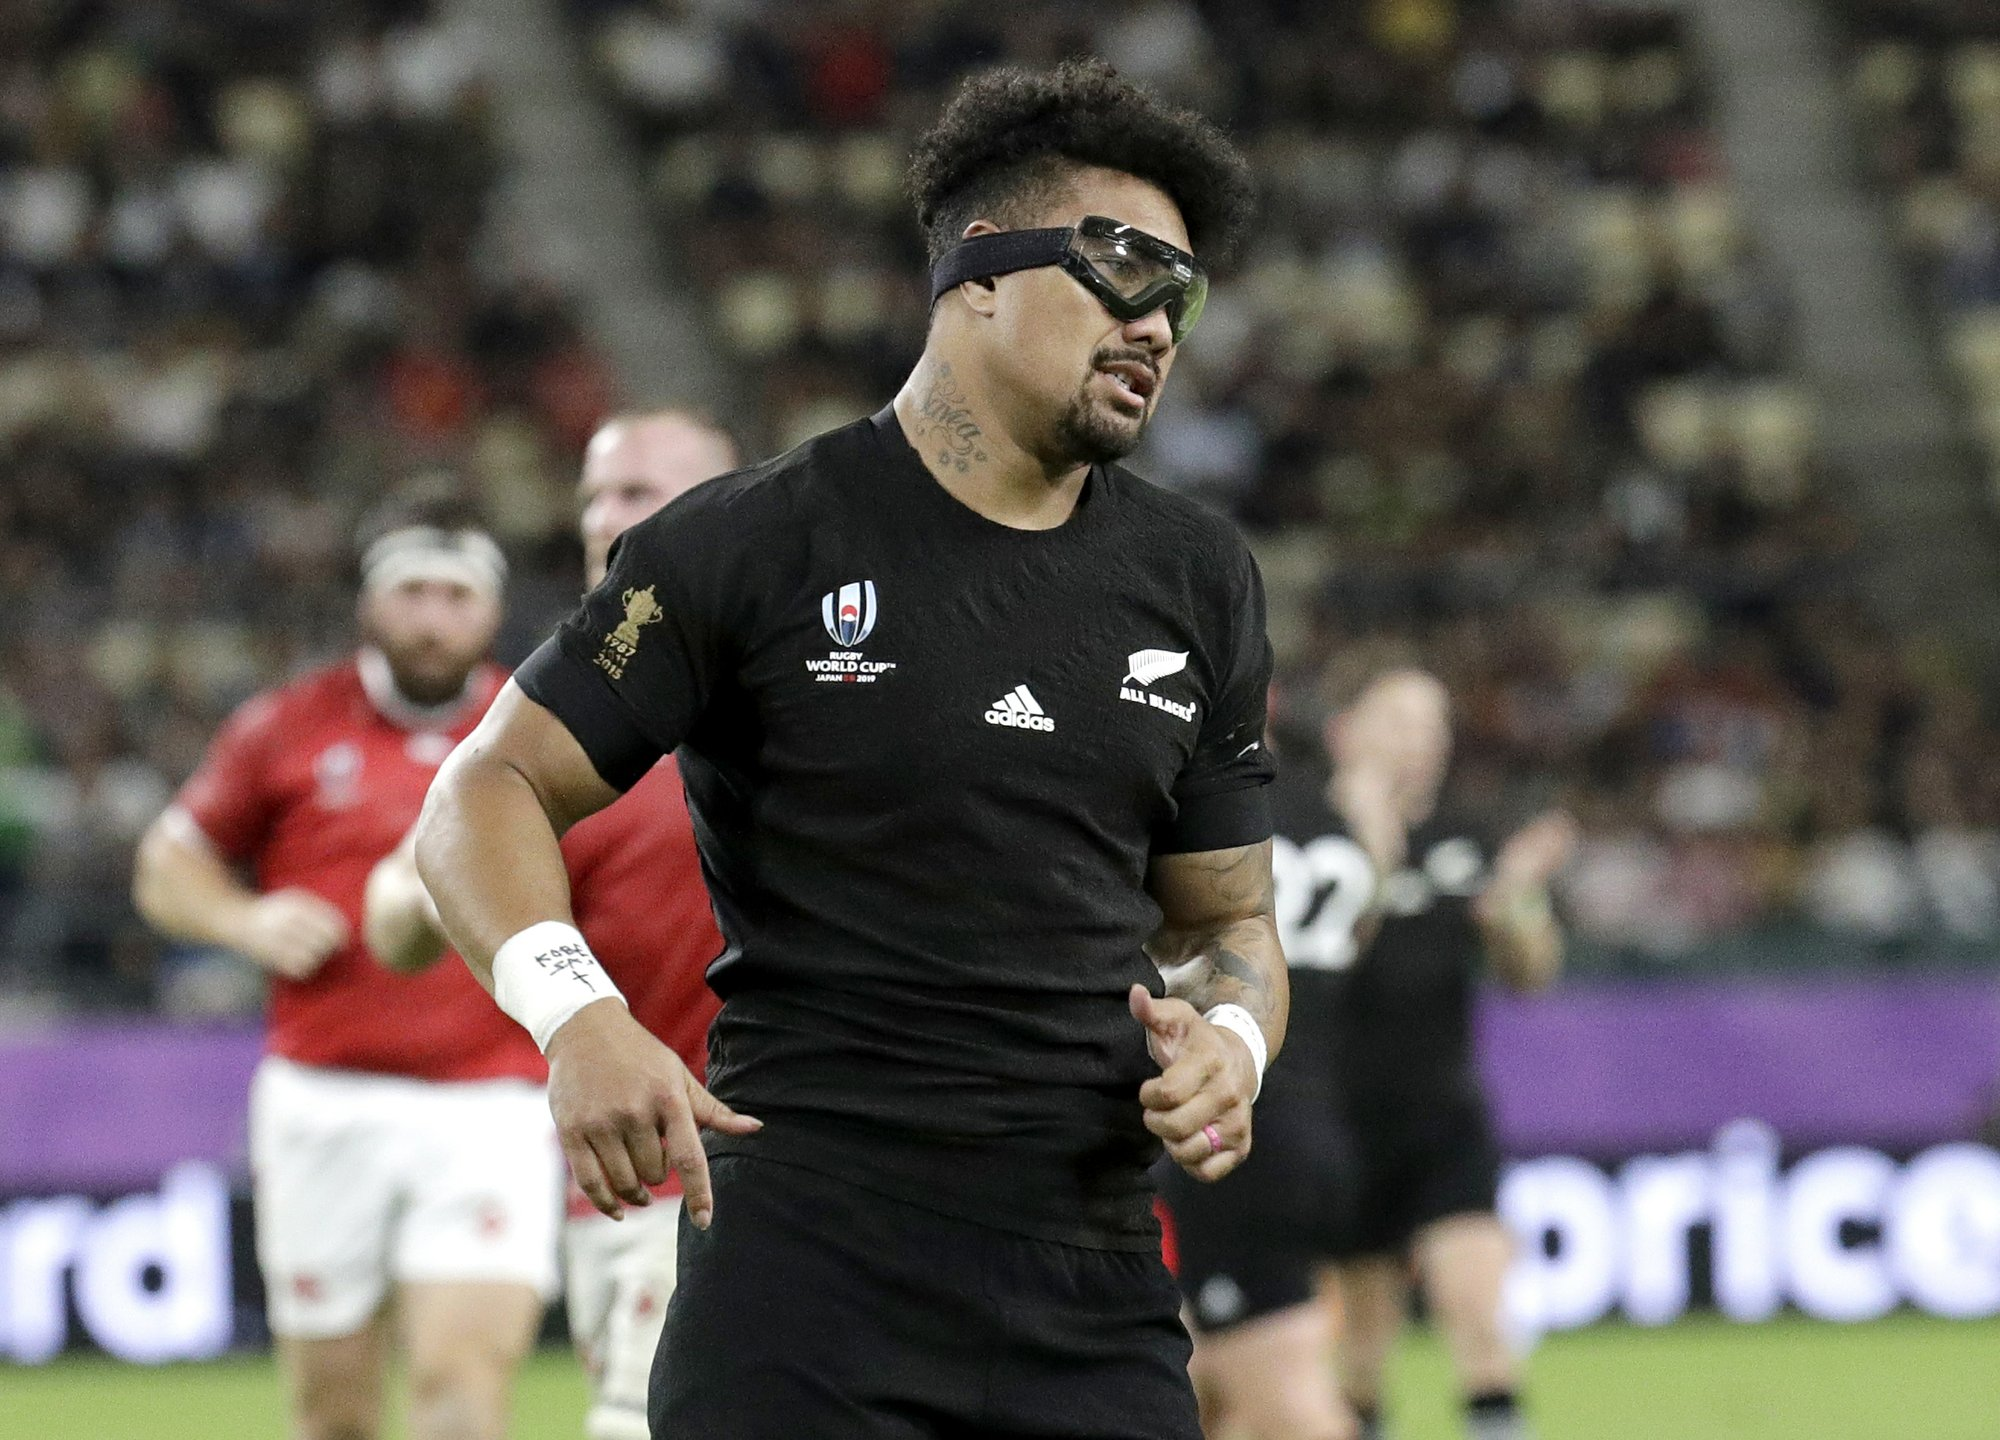 All Blacks' Savea having issues with goggles but persisting